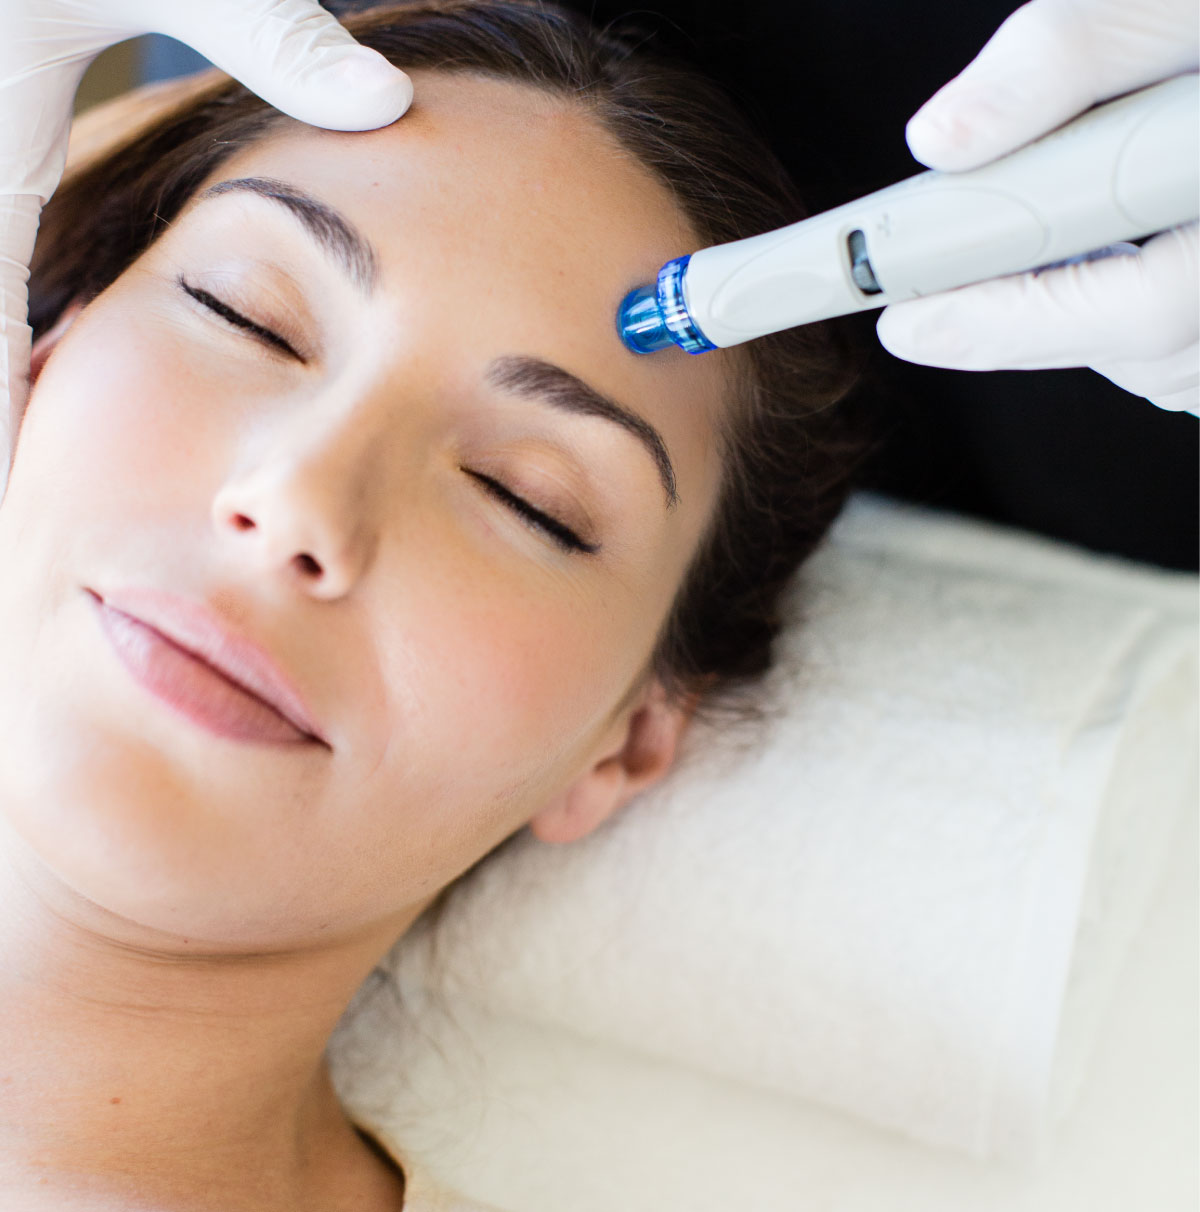 HYDRAFACIAL - The Hydrafacial Company and their patented Hydrafacial system is the only FDA-approved vortex technology to simultaneously cleanse, extract, and hydrate your skin. HydraFacial super serums are made with nourishing ingredients that create an instantly gratifying glow. For an enhanced and extended treatment experience, truly pamper yourself and inquire about upgrading to the Deluxe or Supreme Hydrafacial.30 mins, $150 (Signature)45 mins, $200 (Deluxe)60 mins, $240 (Supreme)